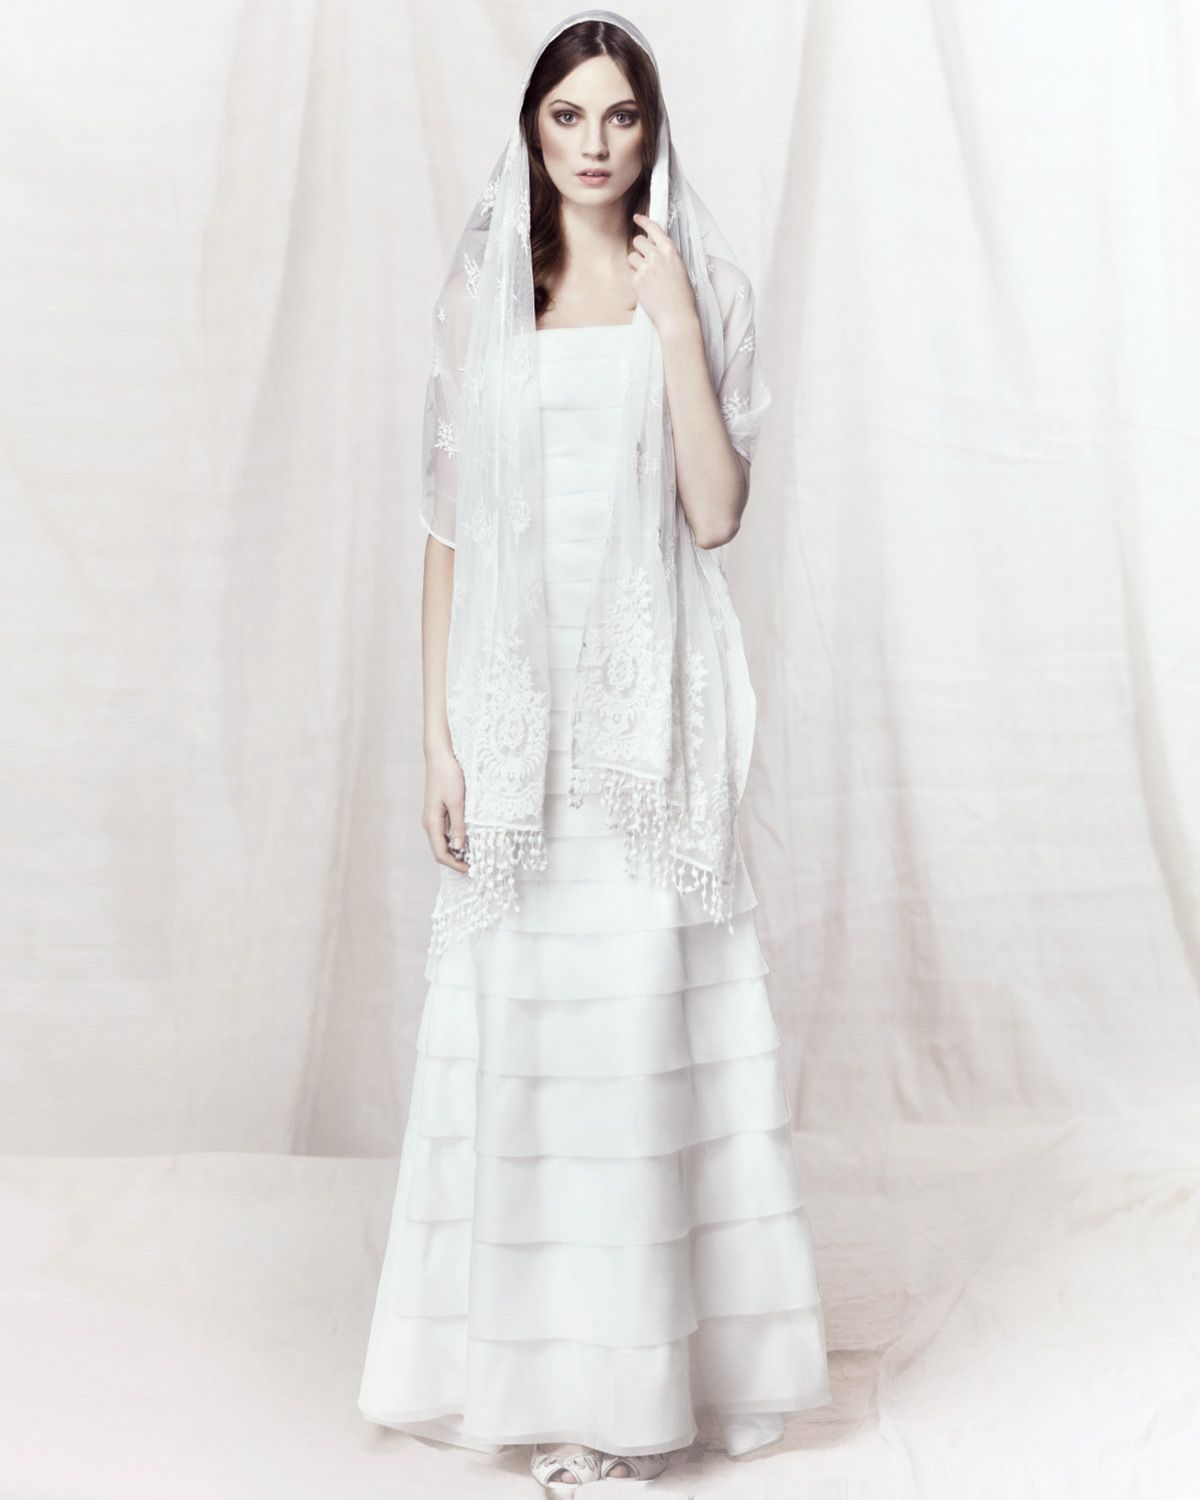 40s wedding dress  Alicia Layered Wedding Dress by Phase Eight  s style wedding